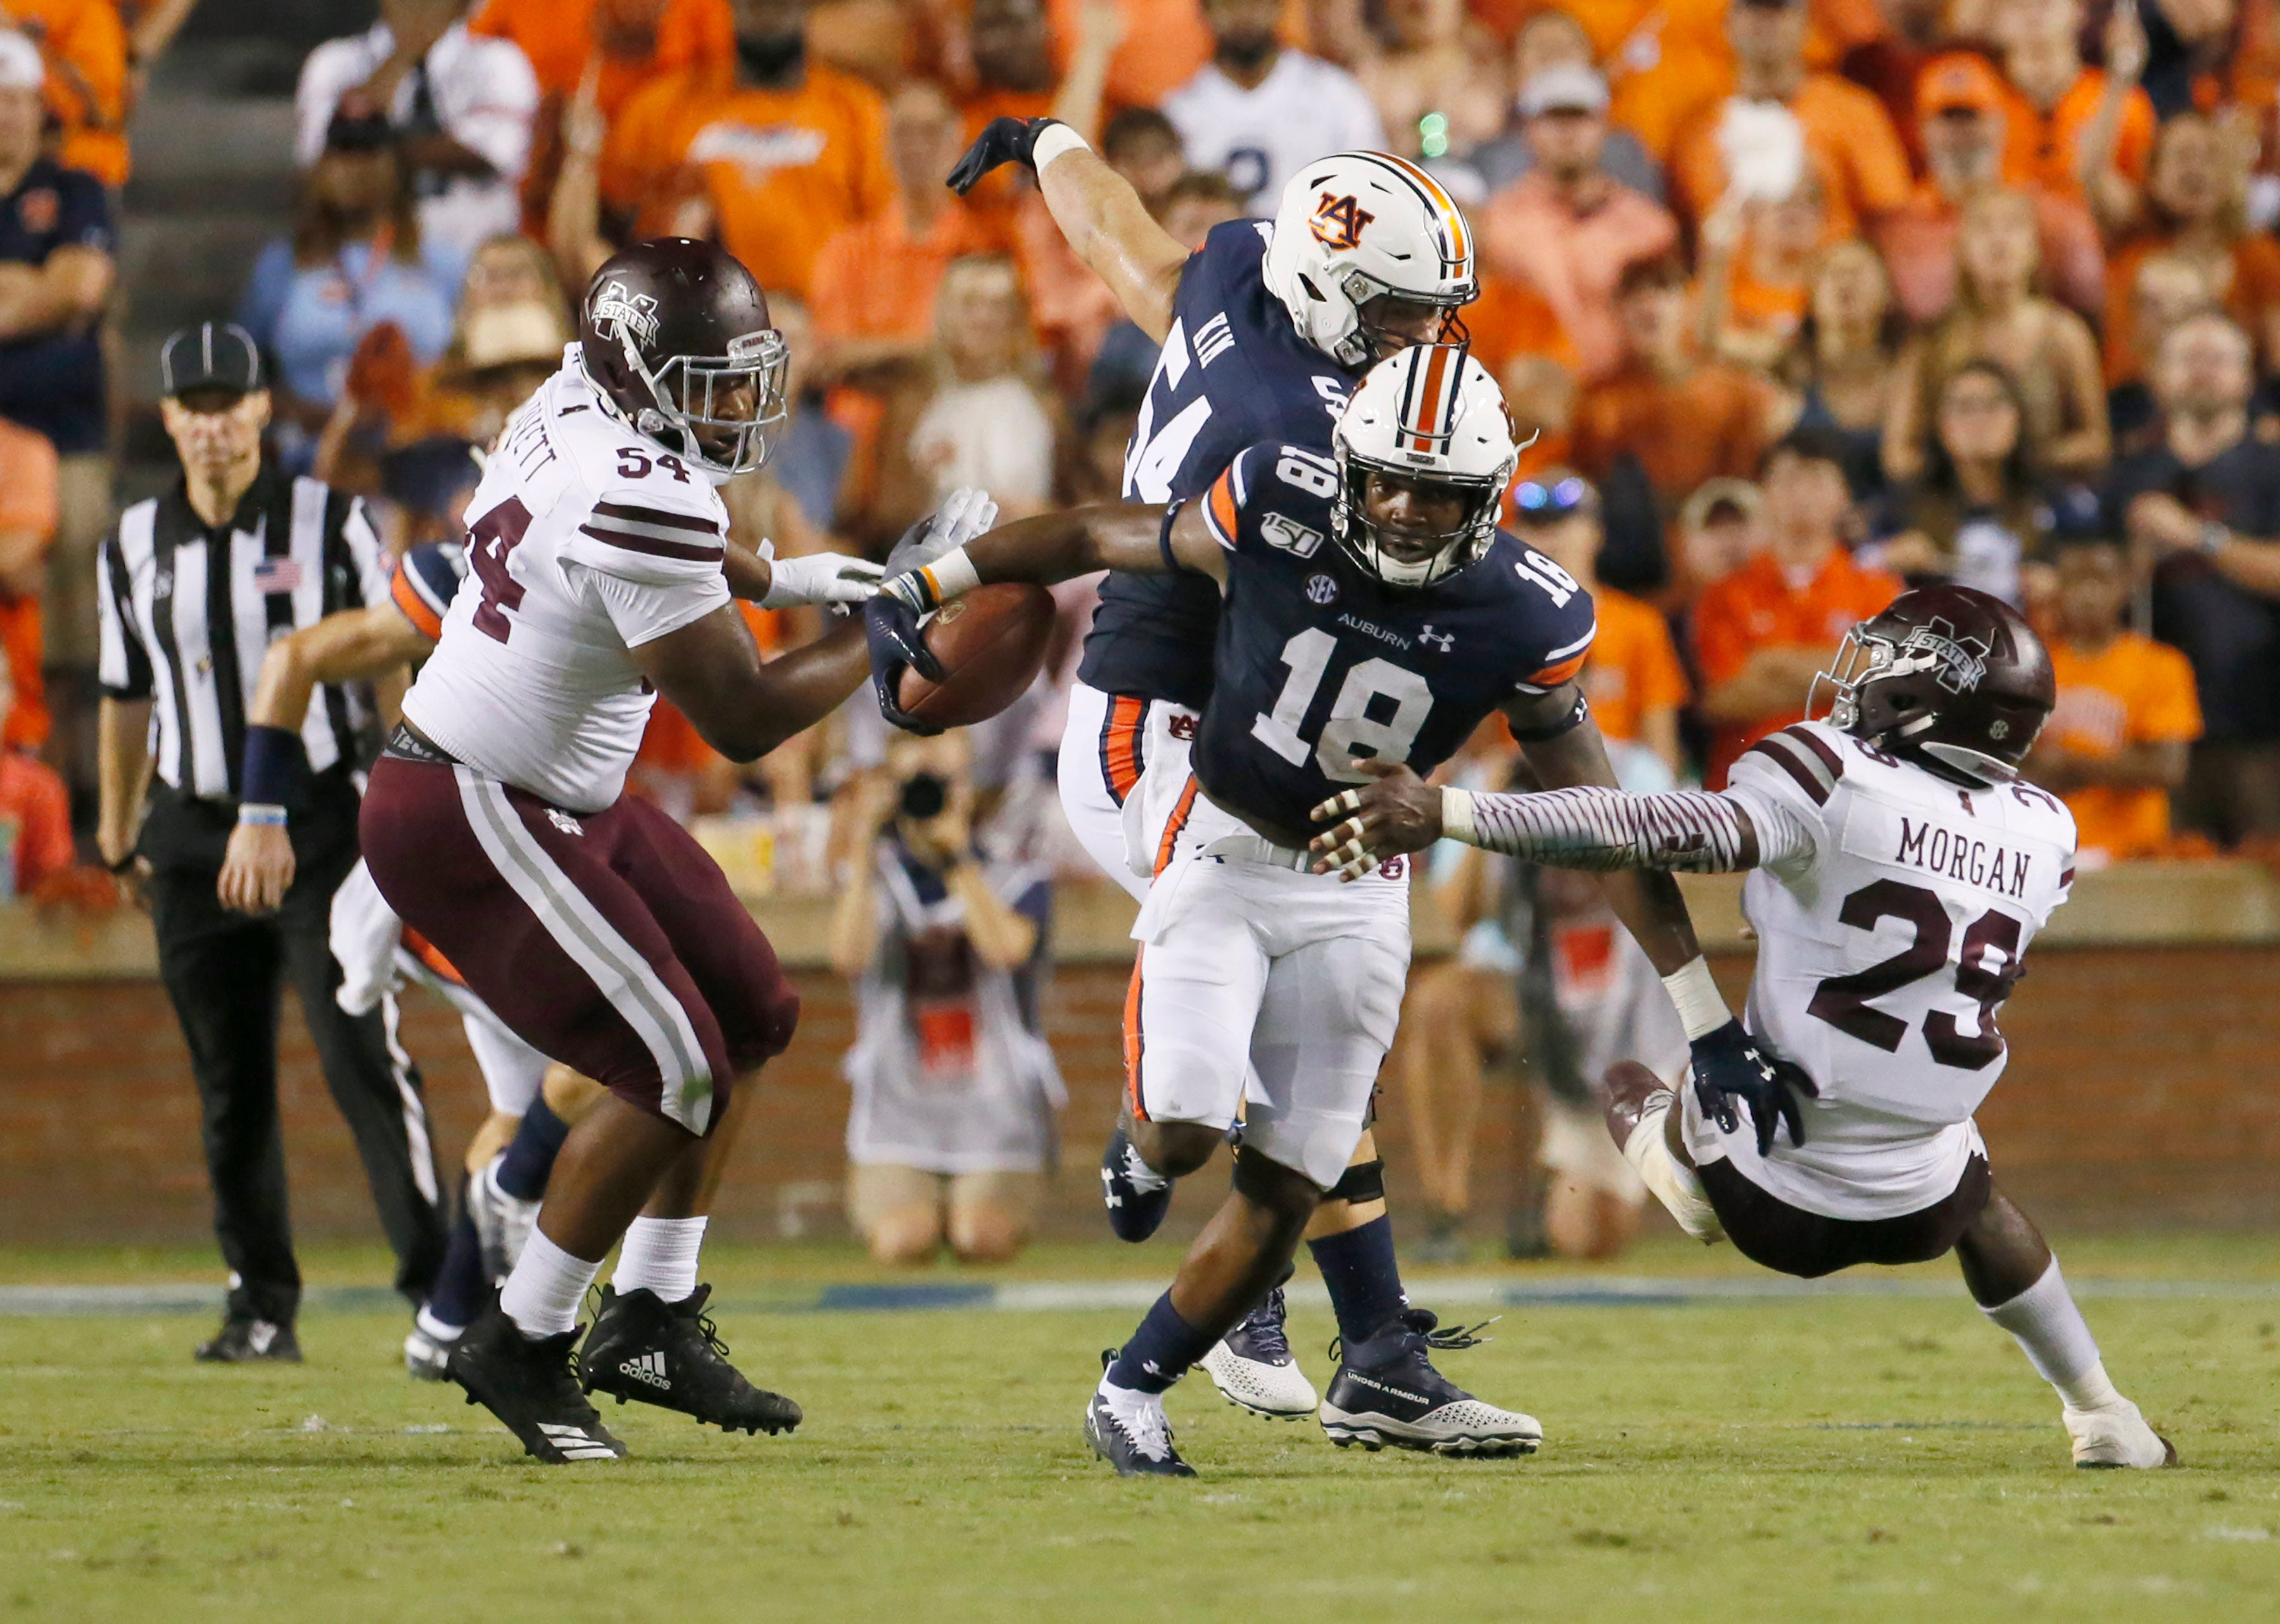 Auburn football game at Mississippi State postponed due to COVID-19